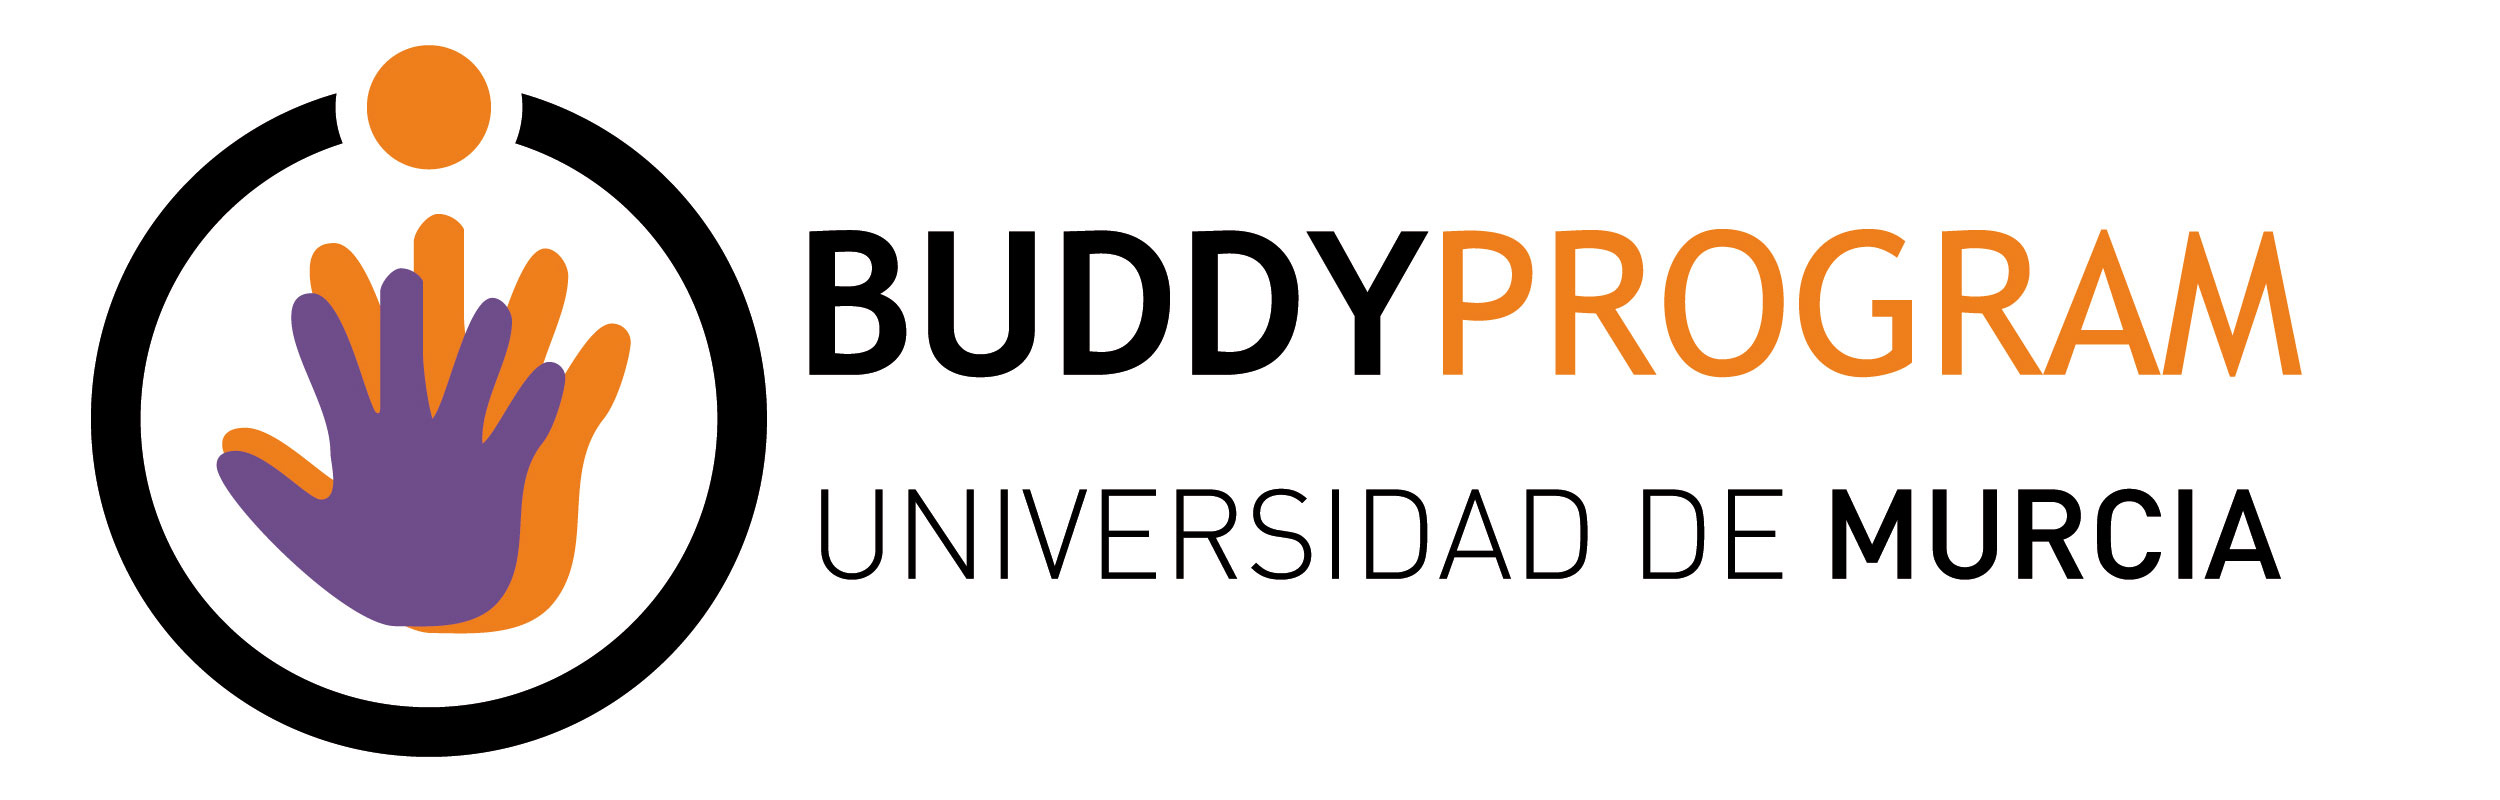 Logo Programa Padrino - Buddy Program